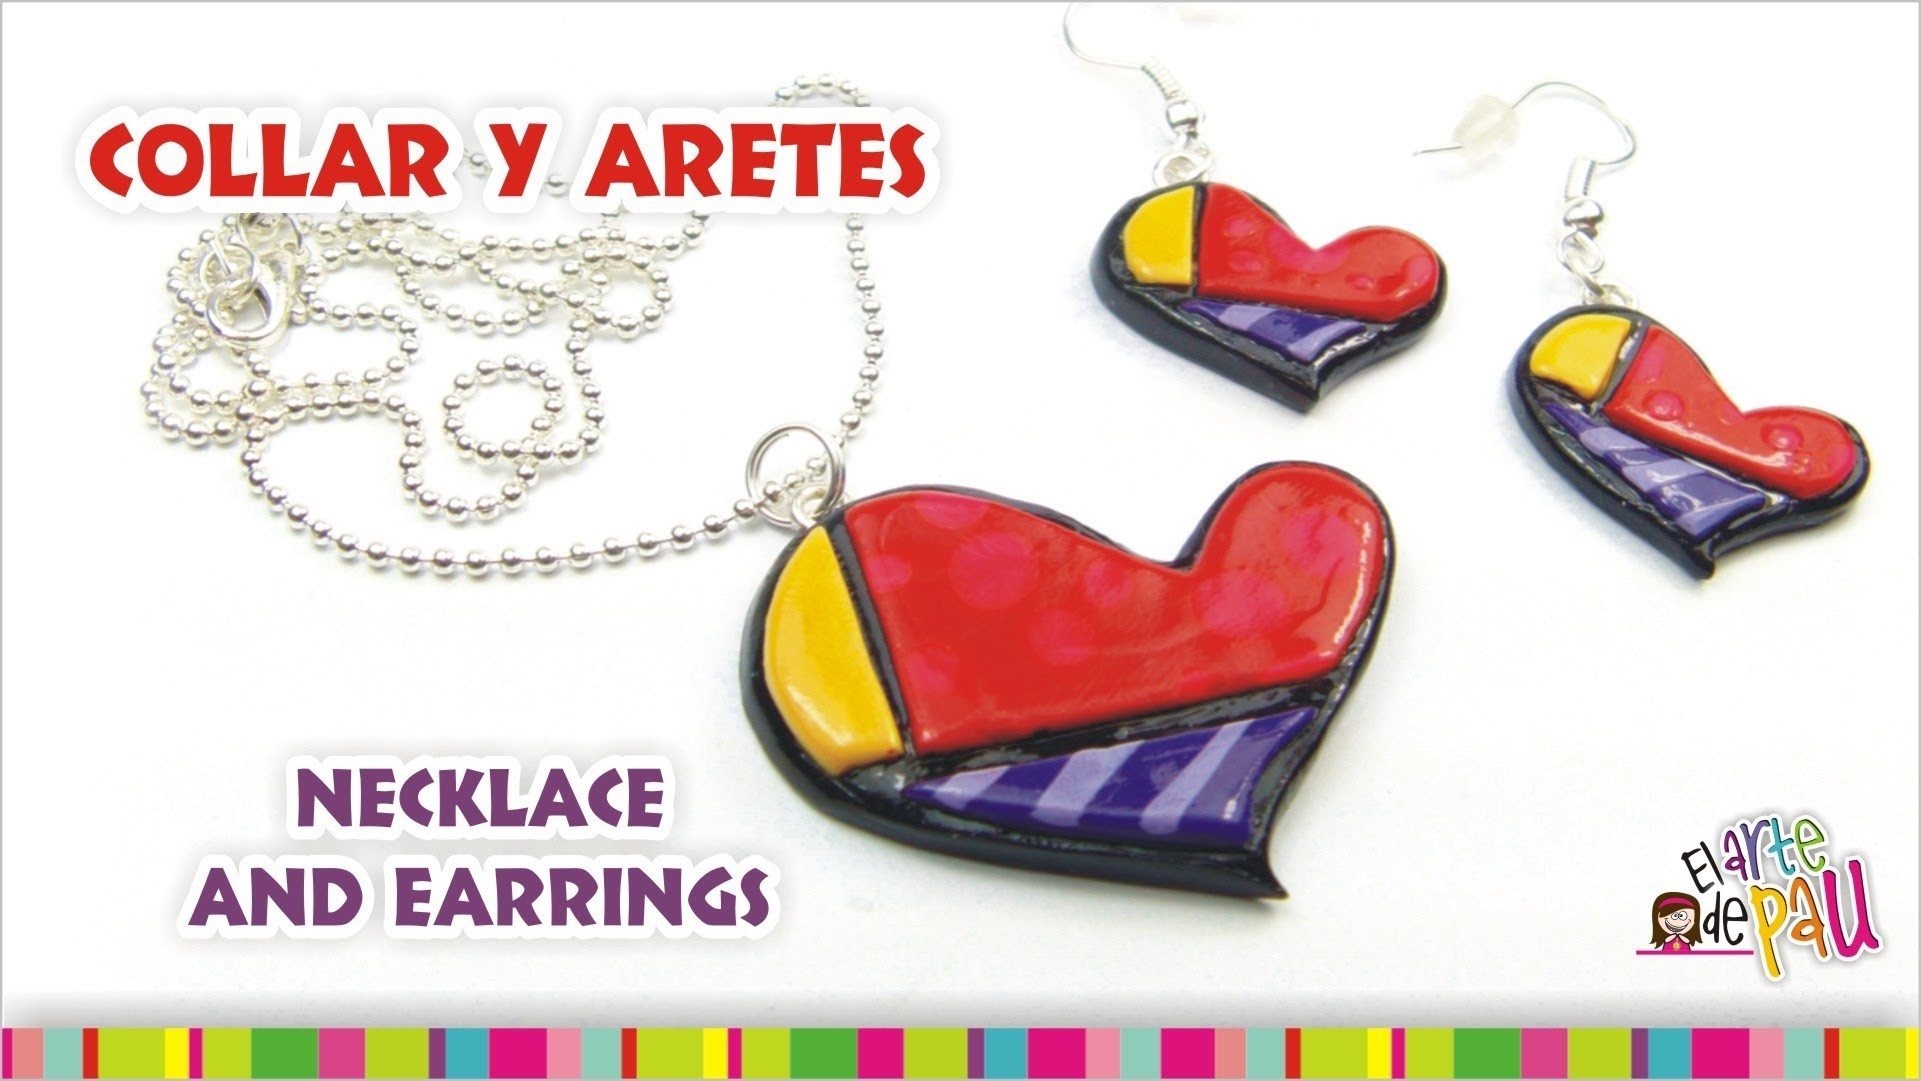 (WINNER 8 MOULDS) Necklace and earrings. (GANADOR 8 MOLDES!) Dije y anillos